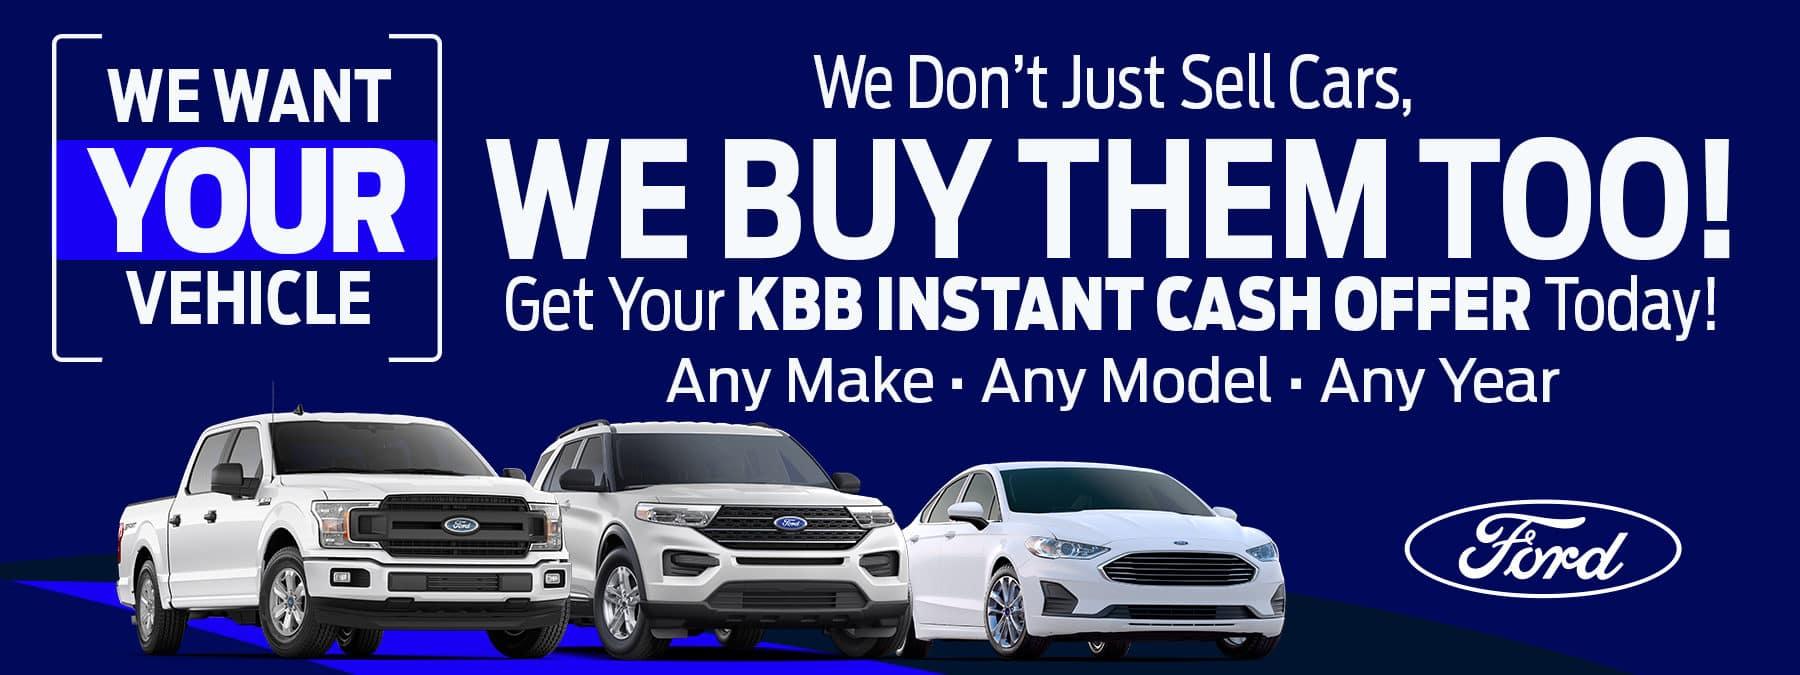 We Buy Cars - We Pay Cash